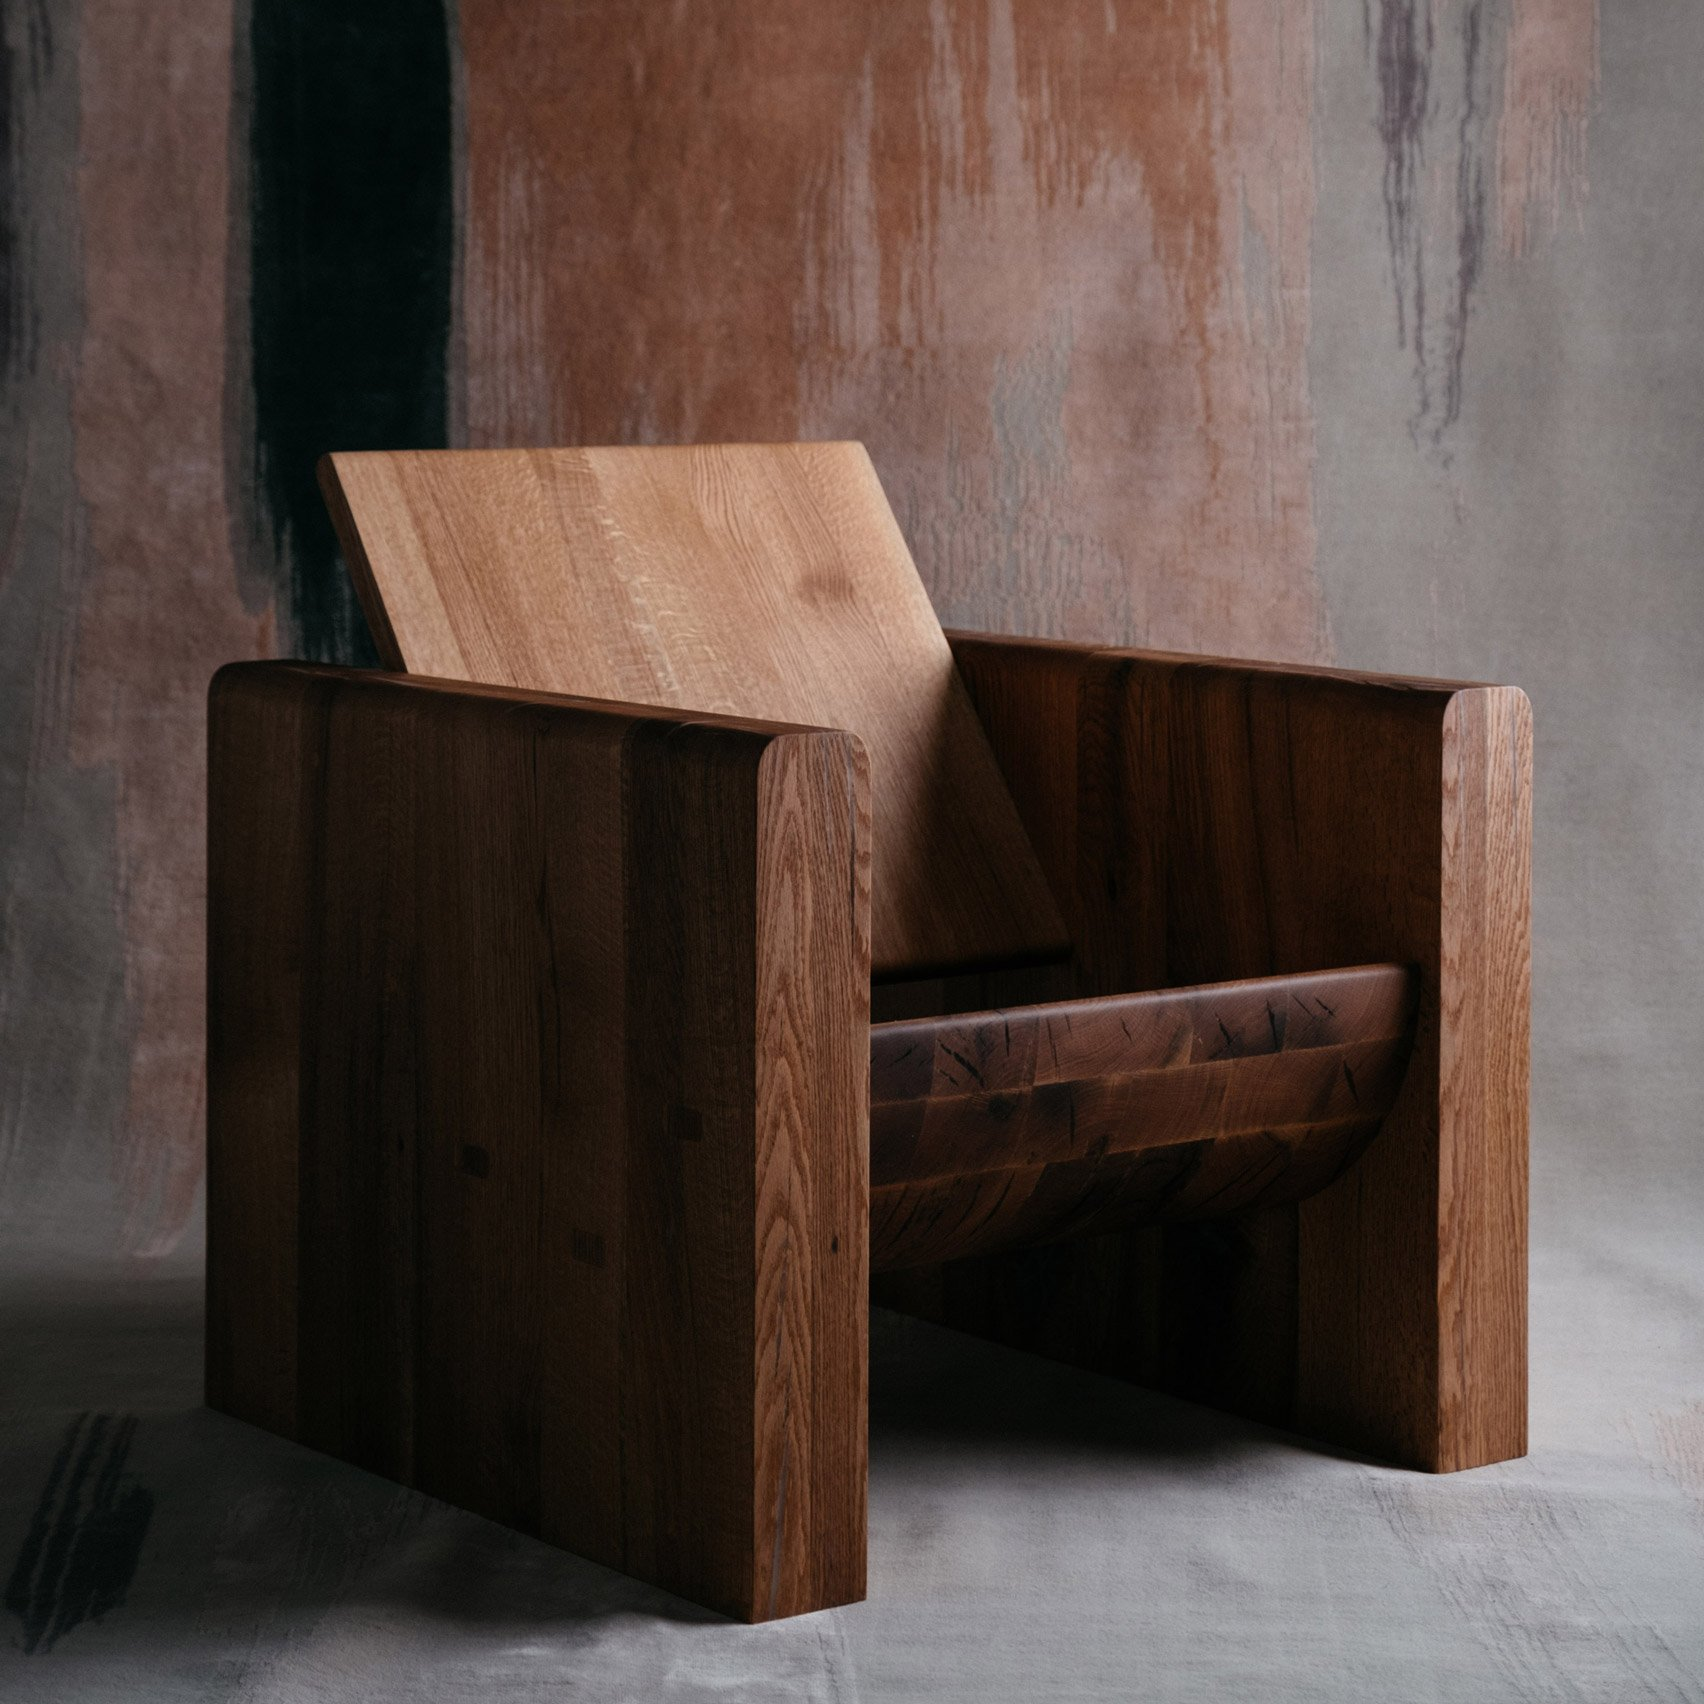 Odami creates a furniture collection from one dying tree